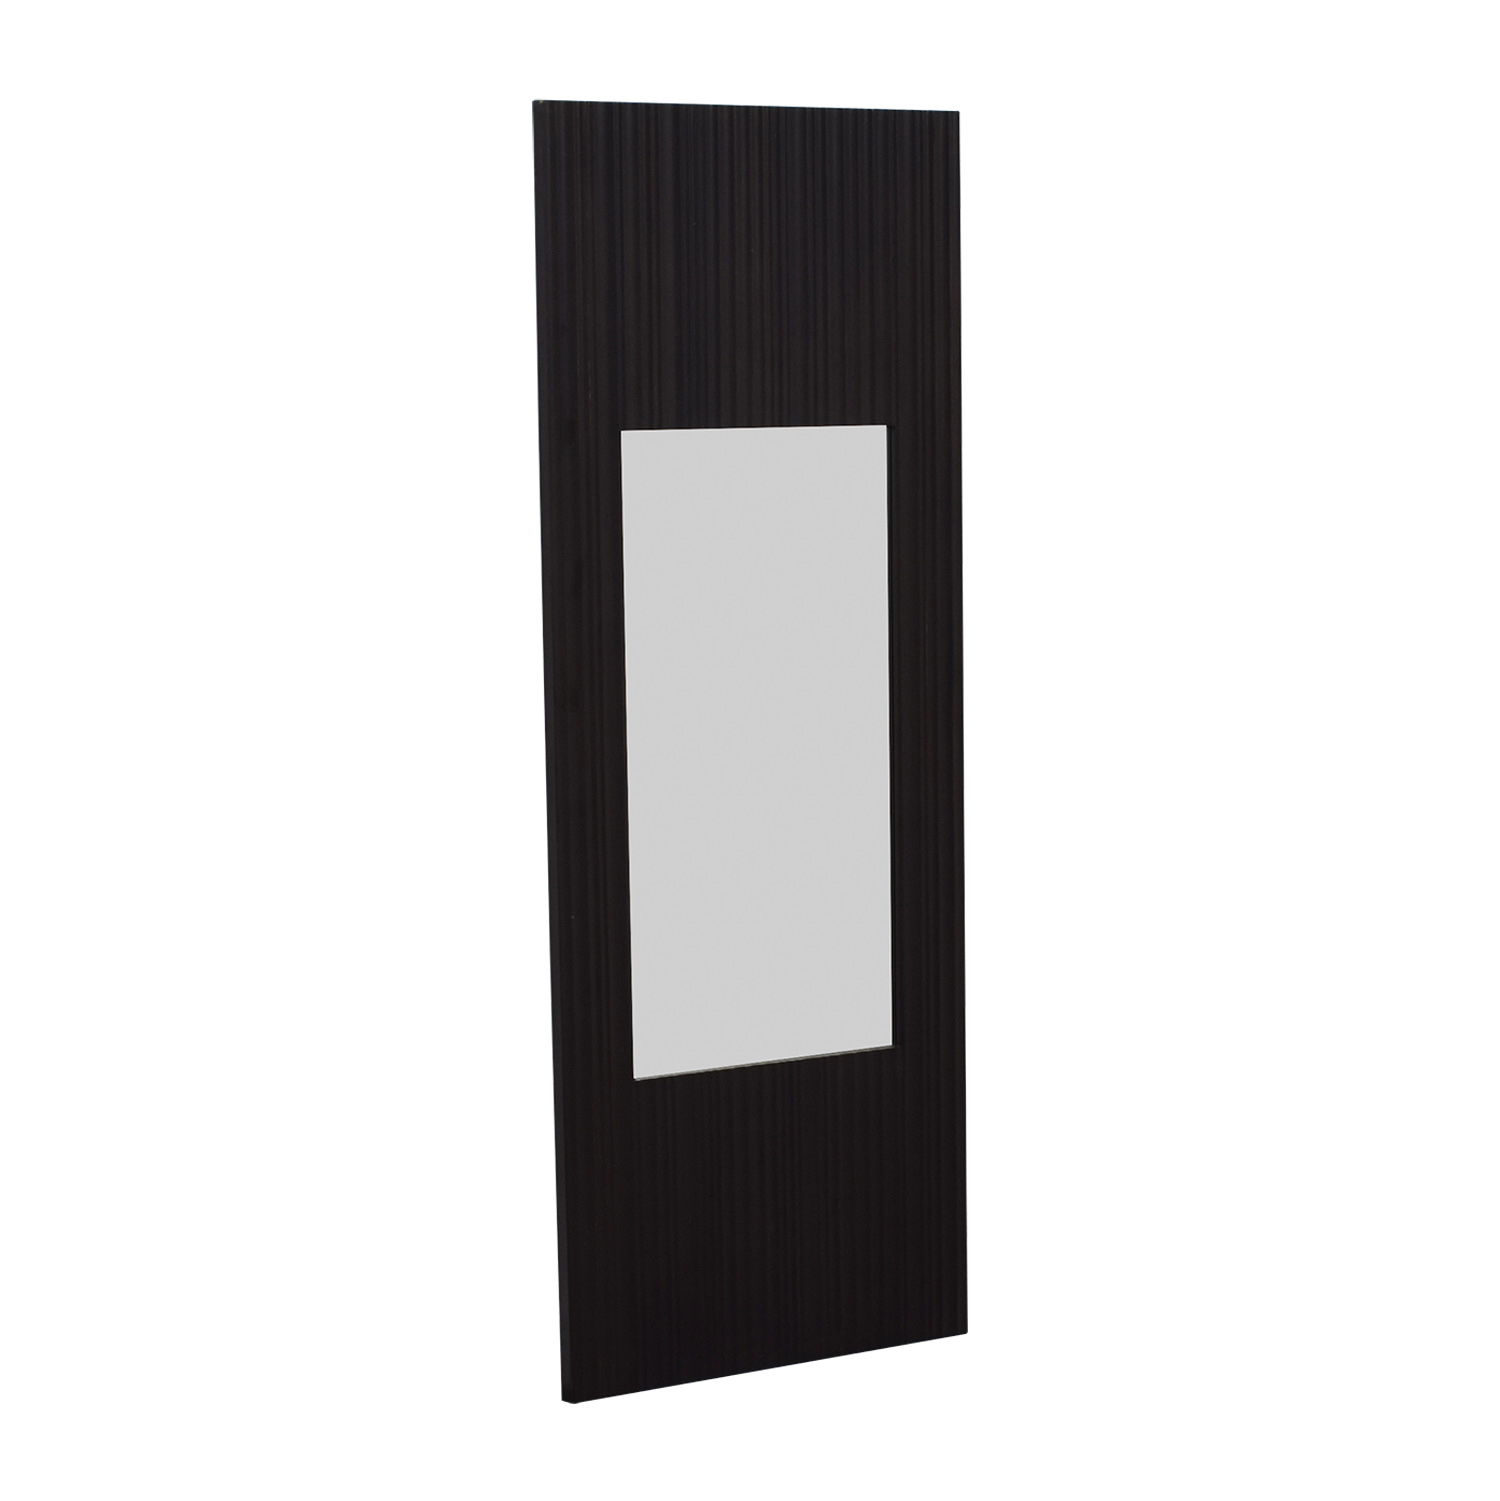 Pier 1 Imports Pier 1 Imports Rectangular Mirror on sale